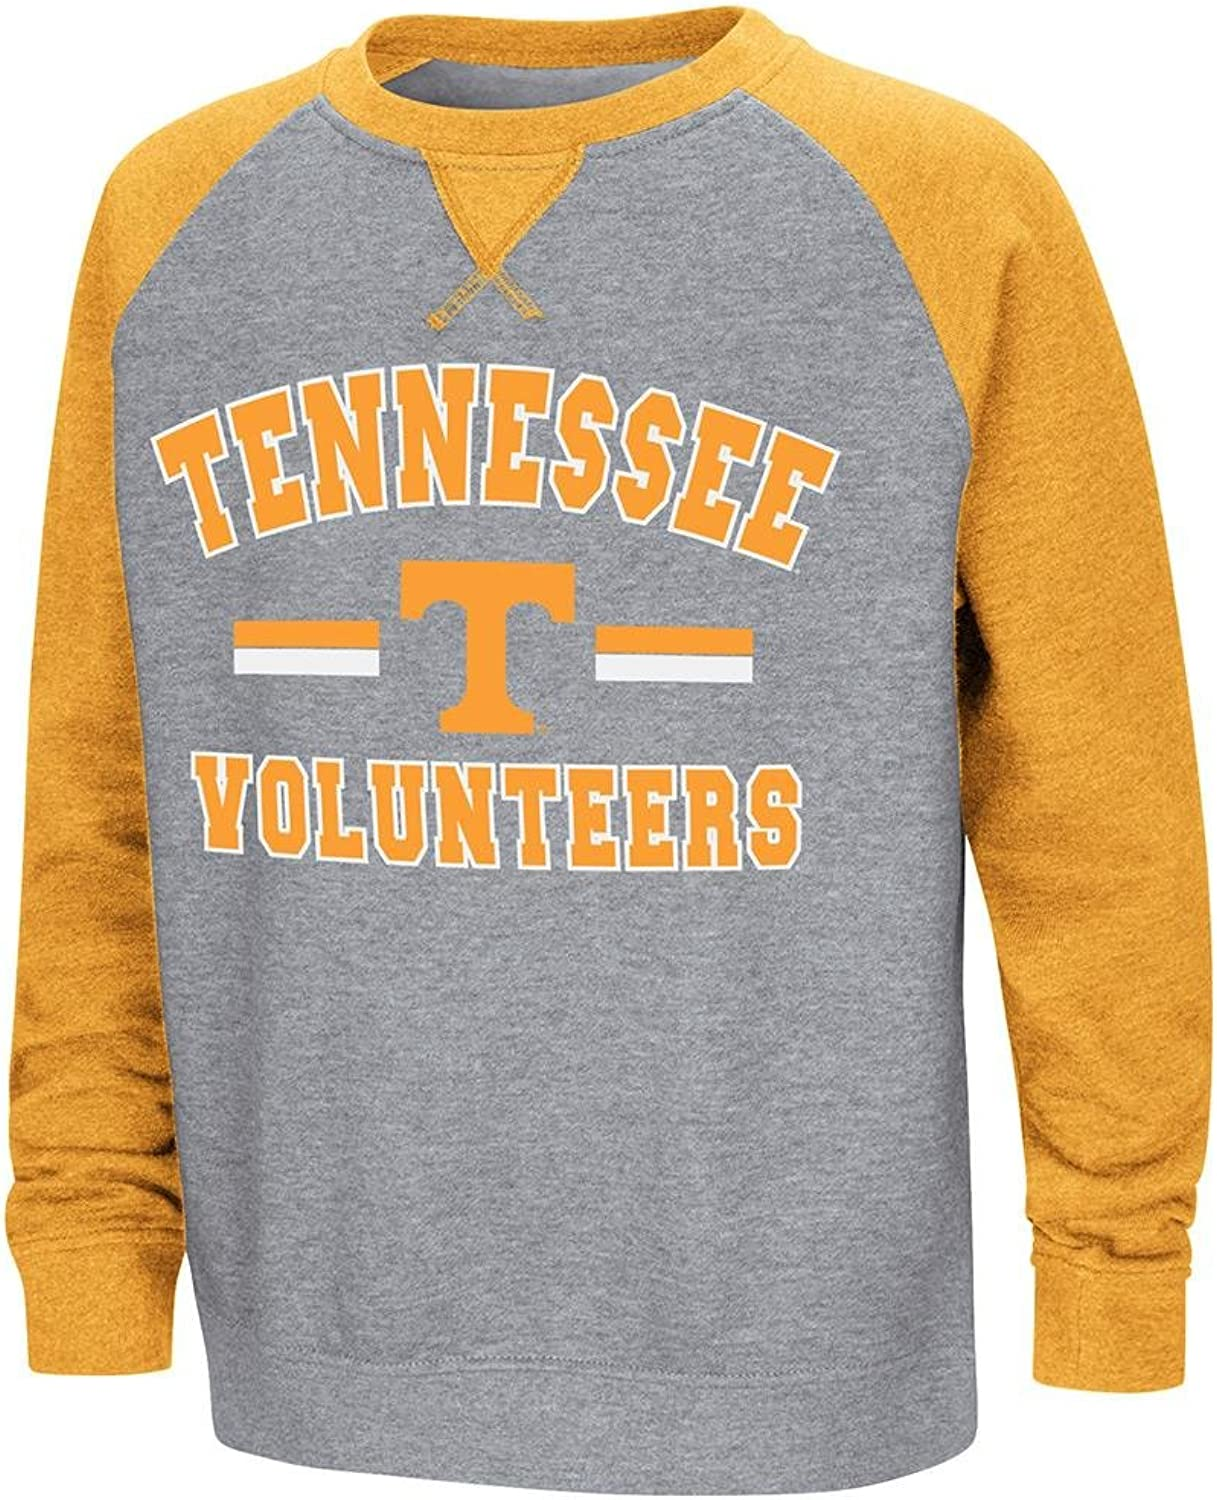 Youth Tennessee Volunteers Fleece Crewneck Sweatshirt